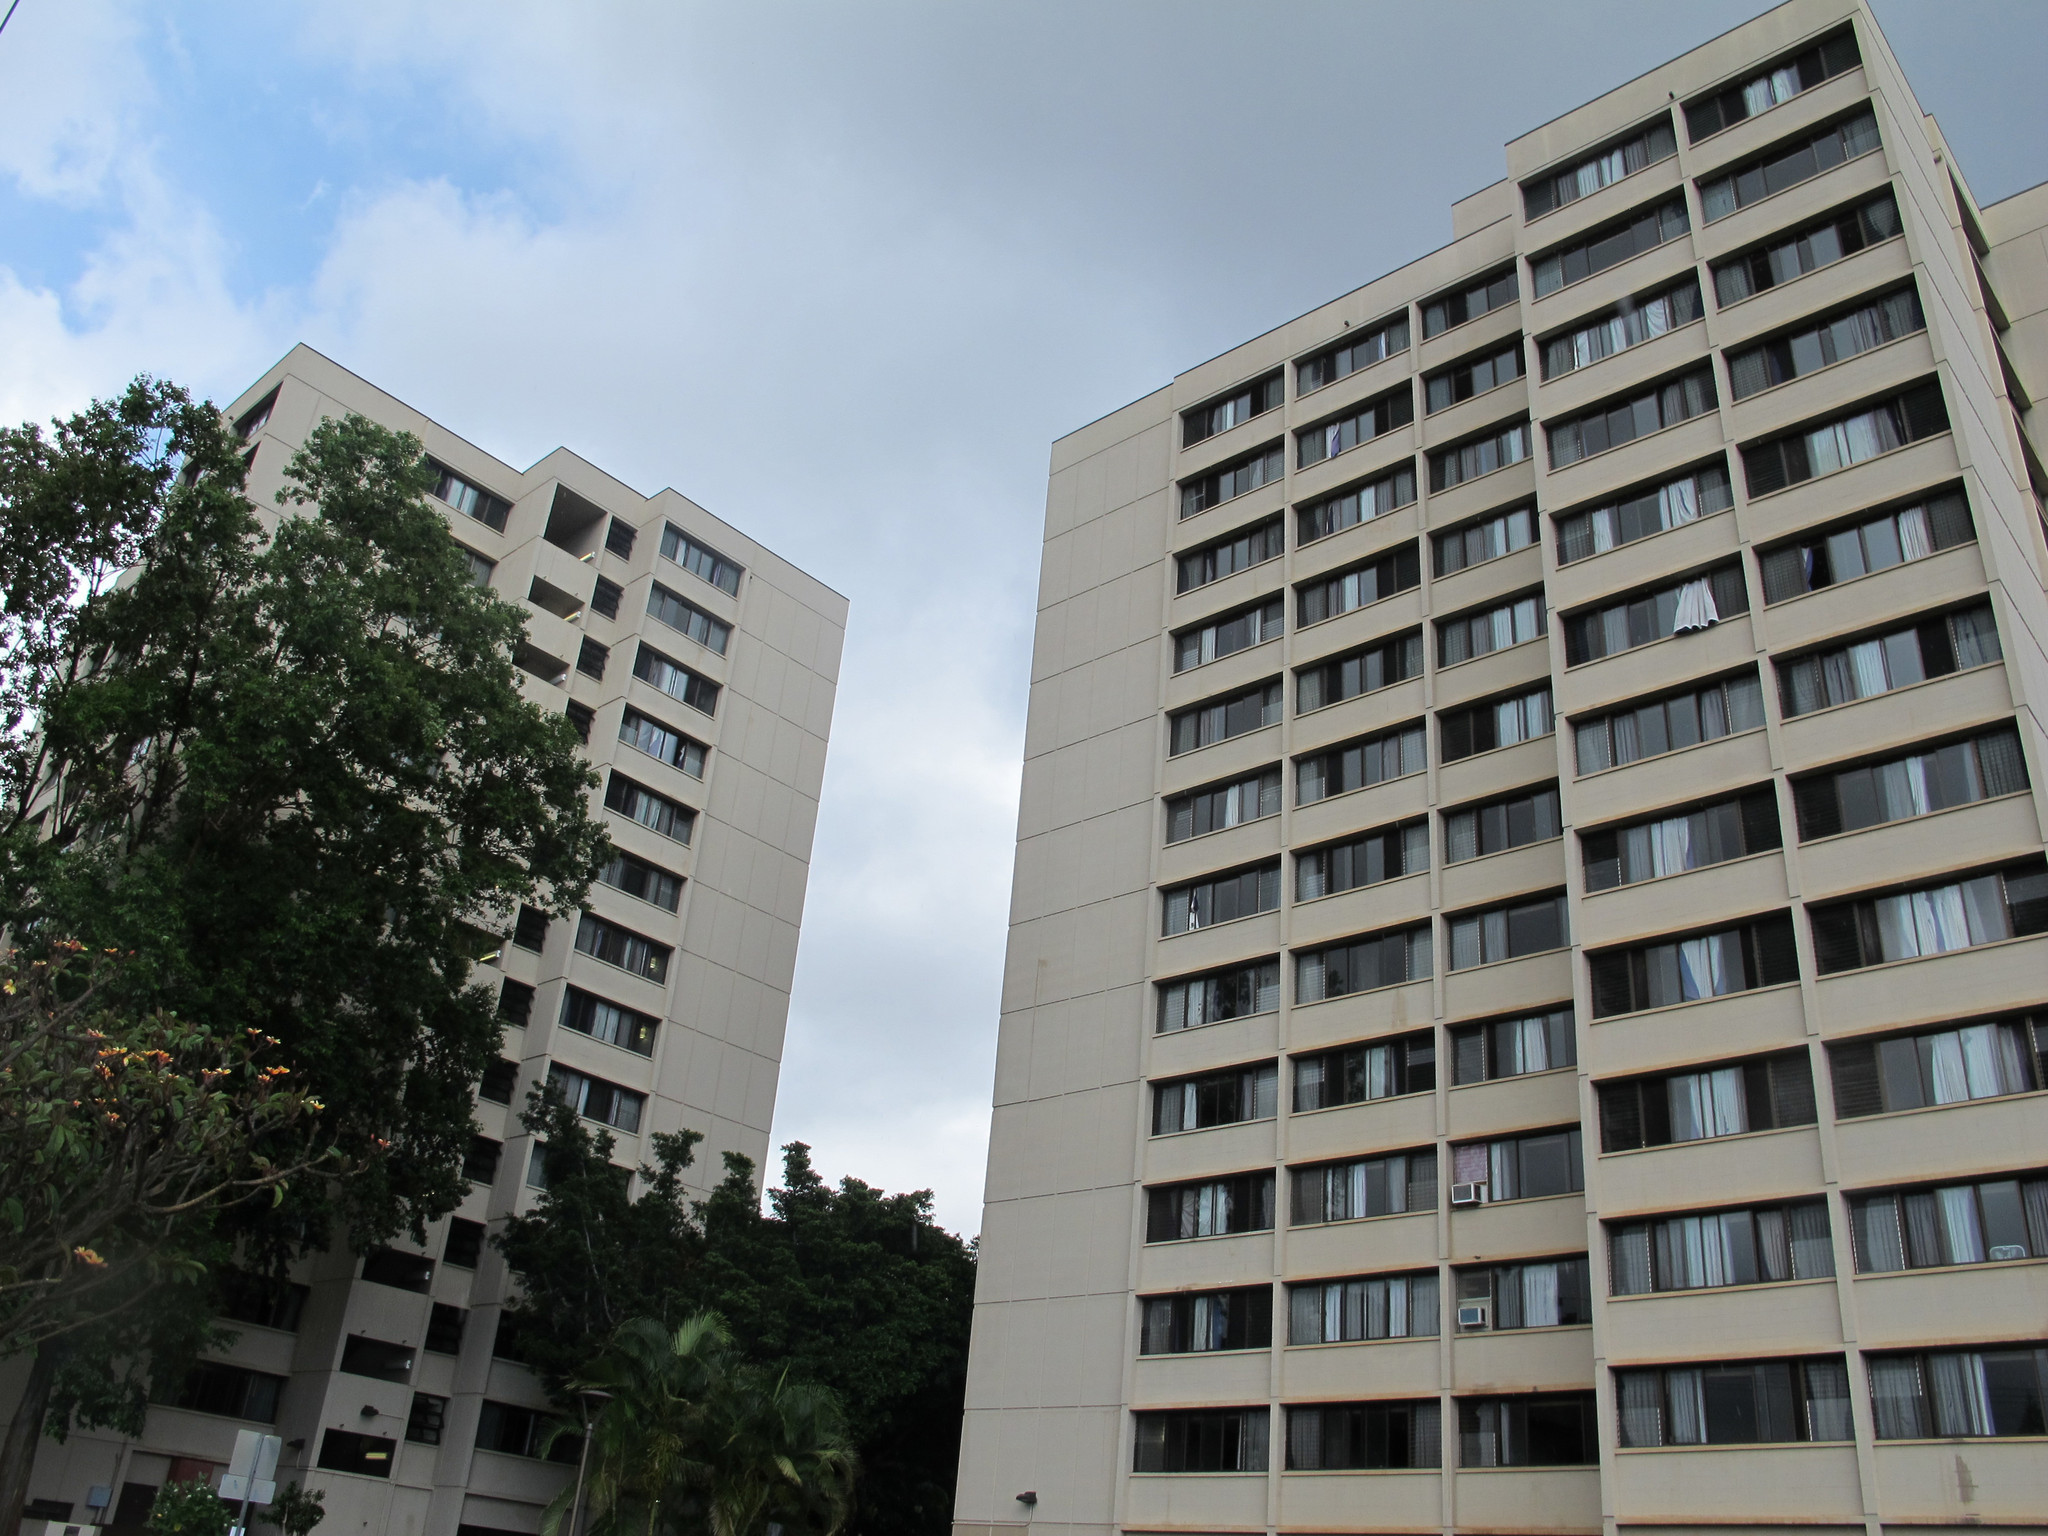 Man trying to stop suicide falls to death from Hawaii dorm